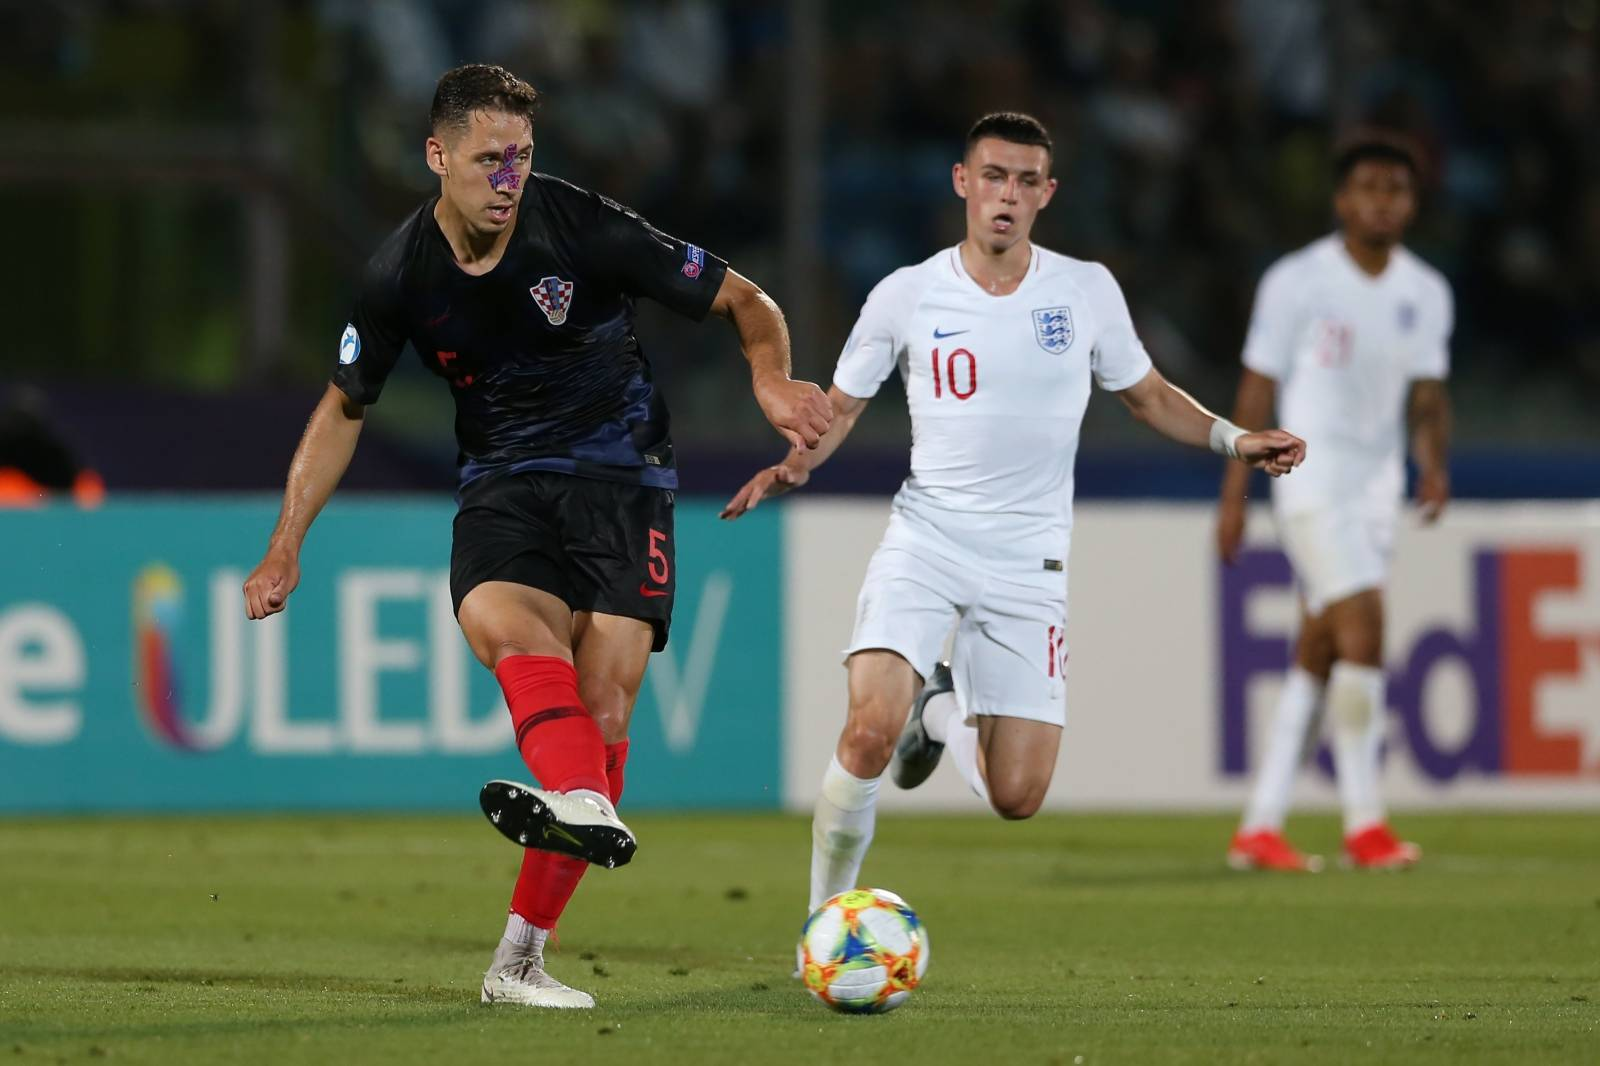 Croatia v England - 2019 UEFA European Under-21 Championship - Group C - San Marino Stadium